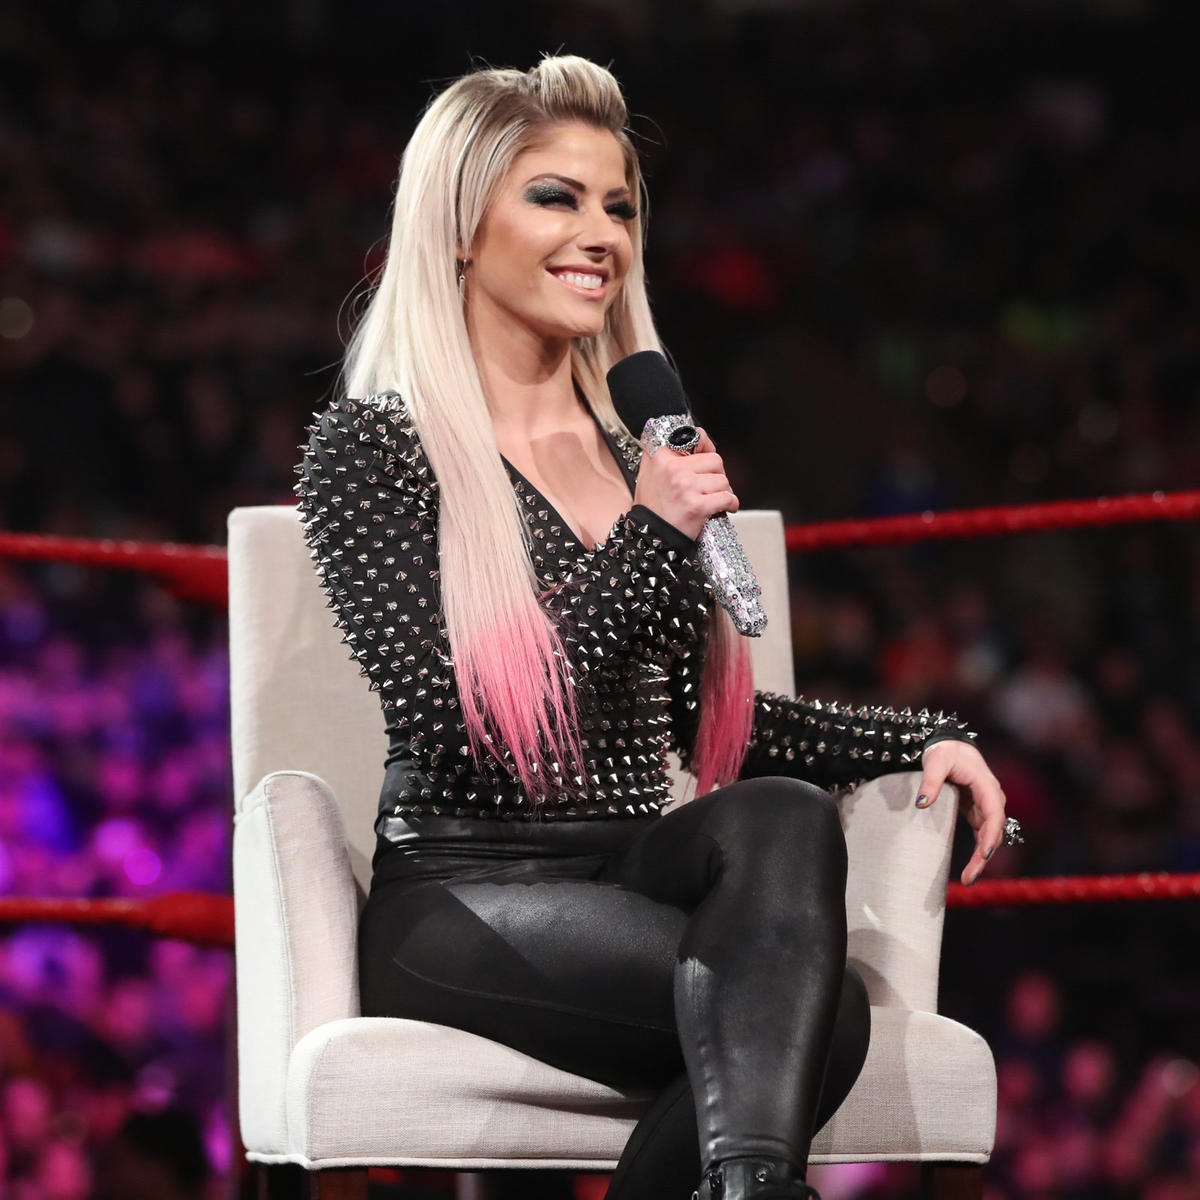 She says WrestleMania has been getting better and better ever since she was named the host.